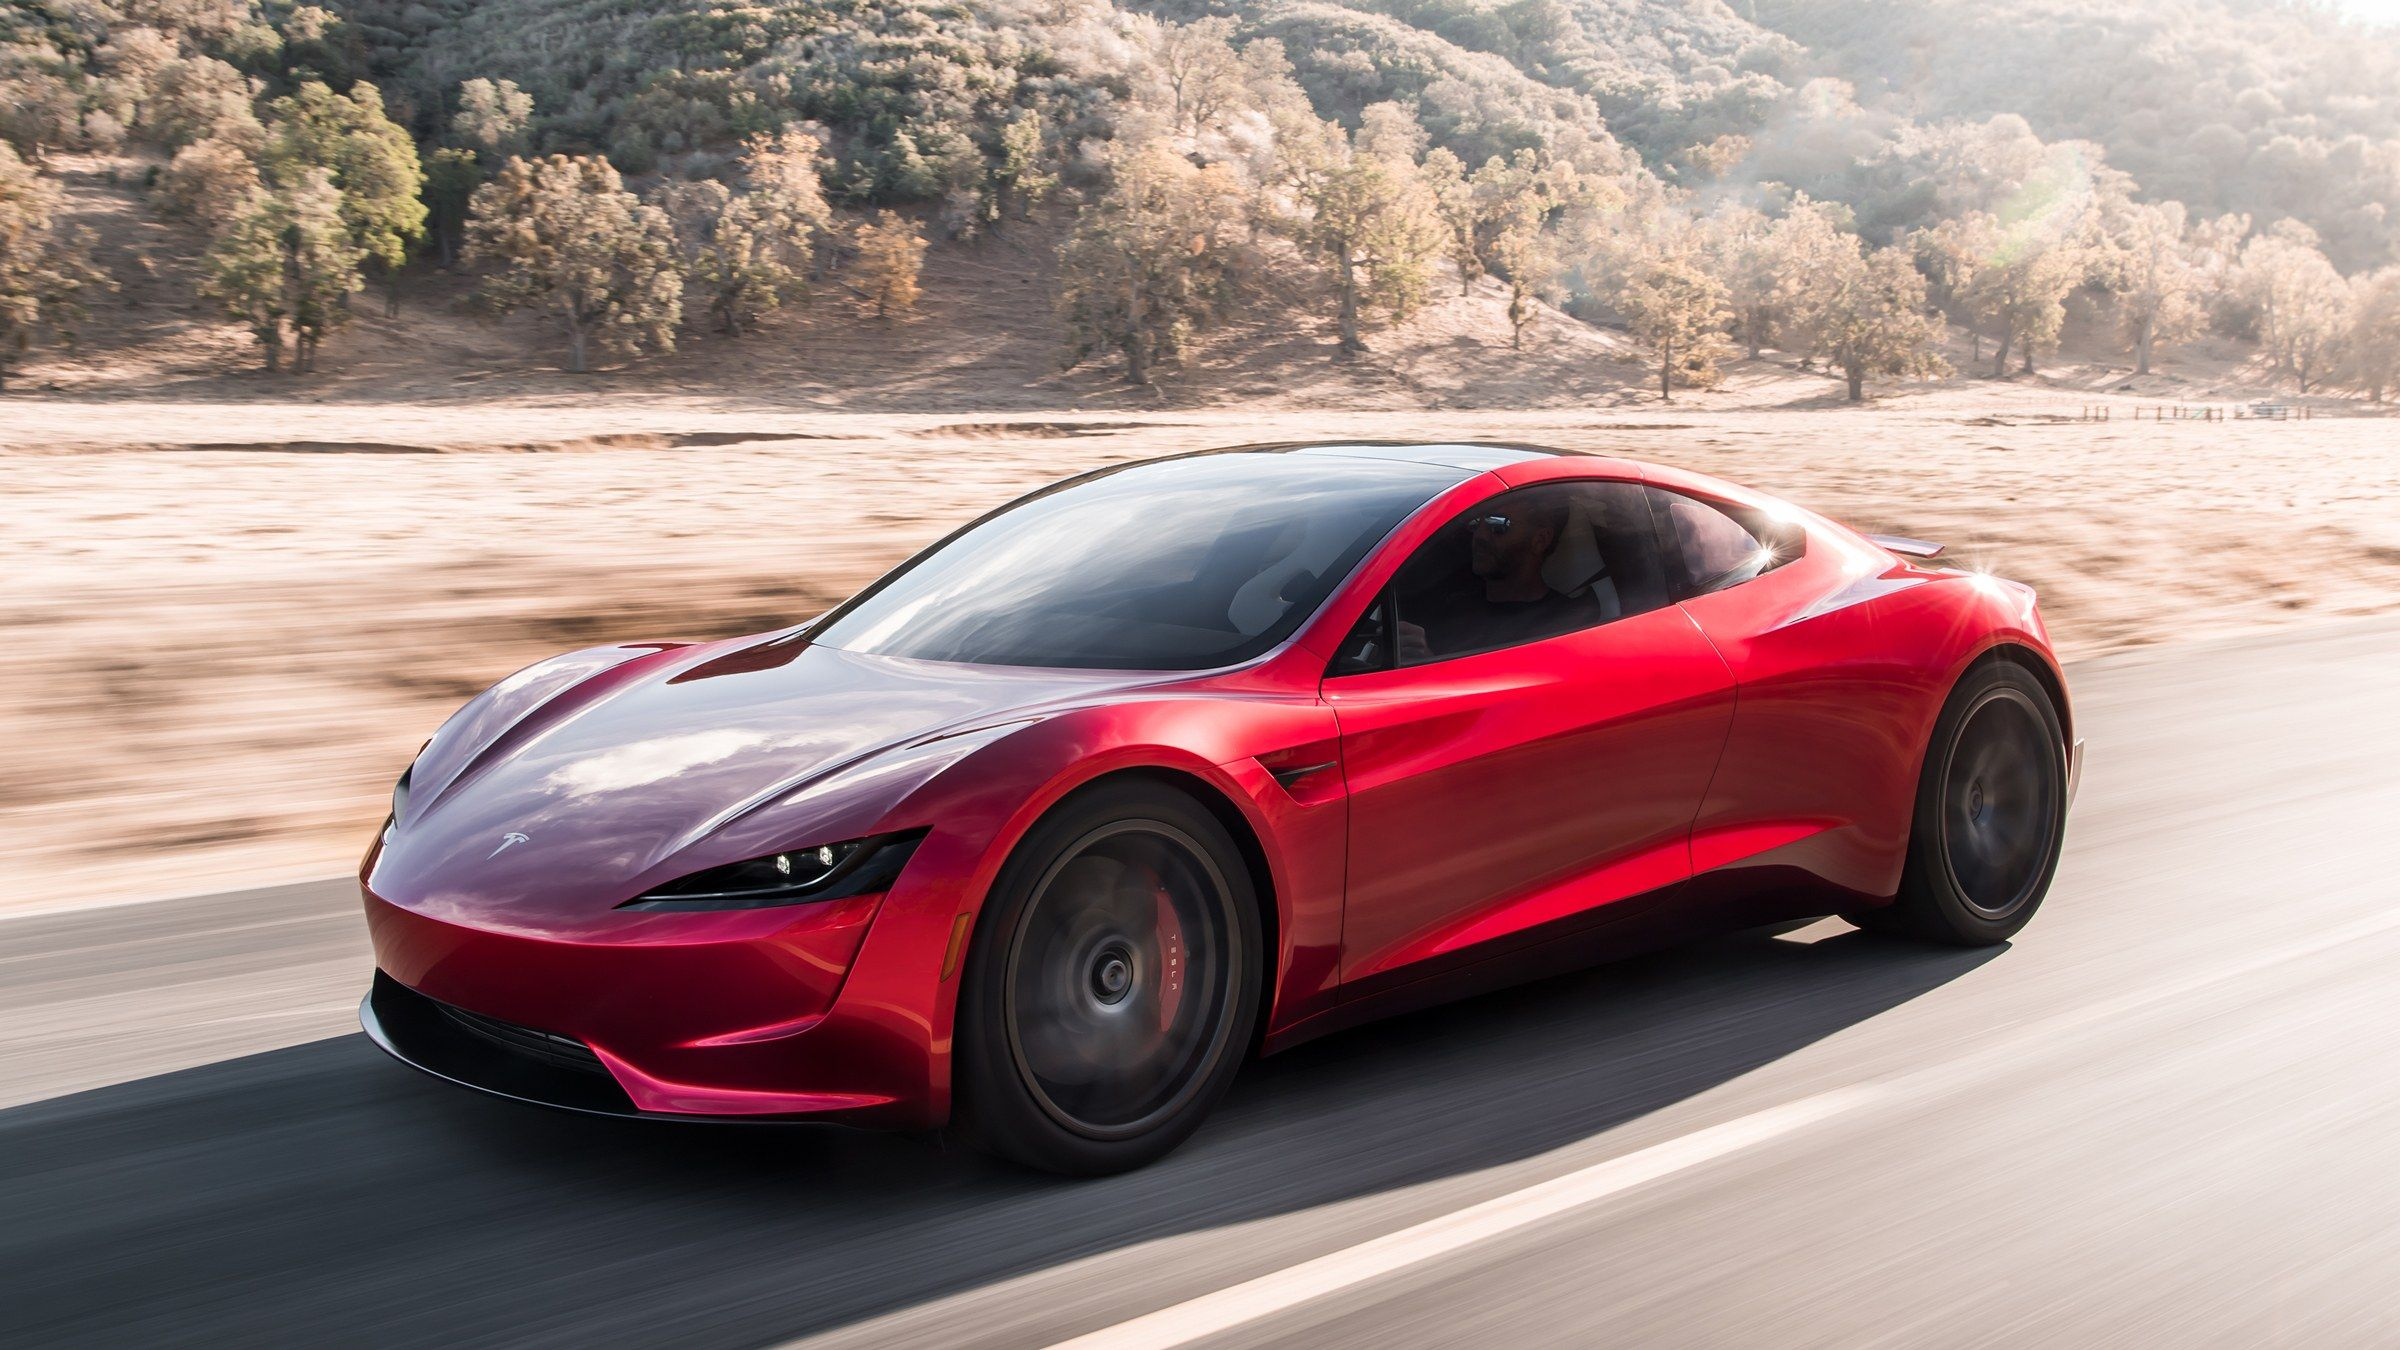 Tesla S New Roadster Everything We Know New Tesla Roadster Tesla Roadster Price Tesla Car